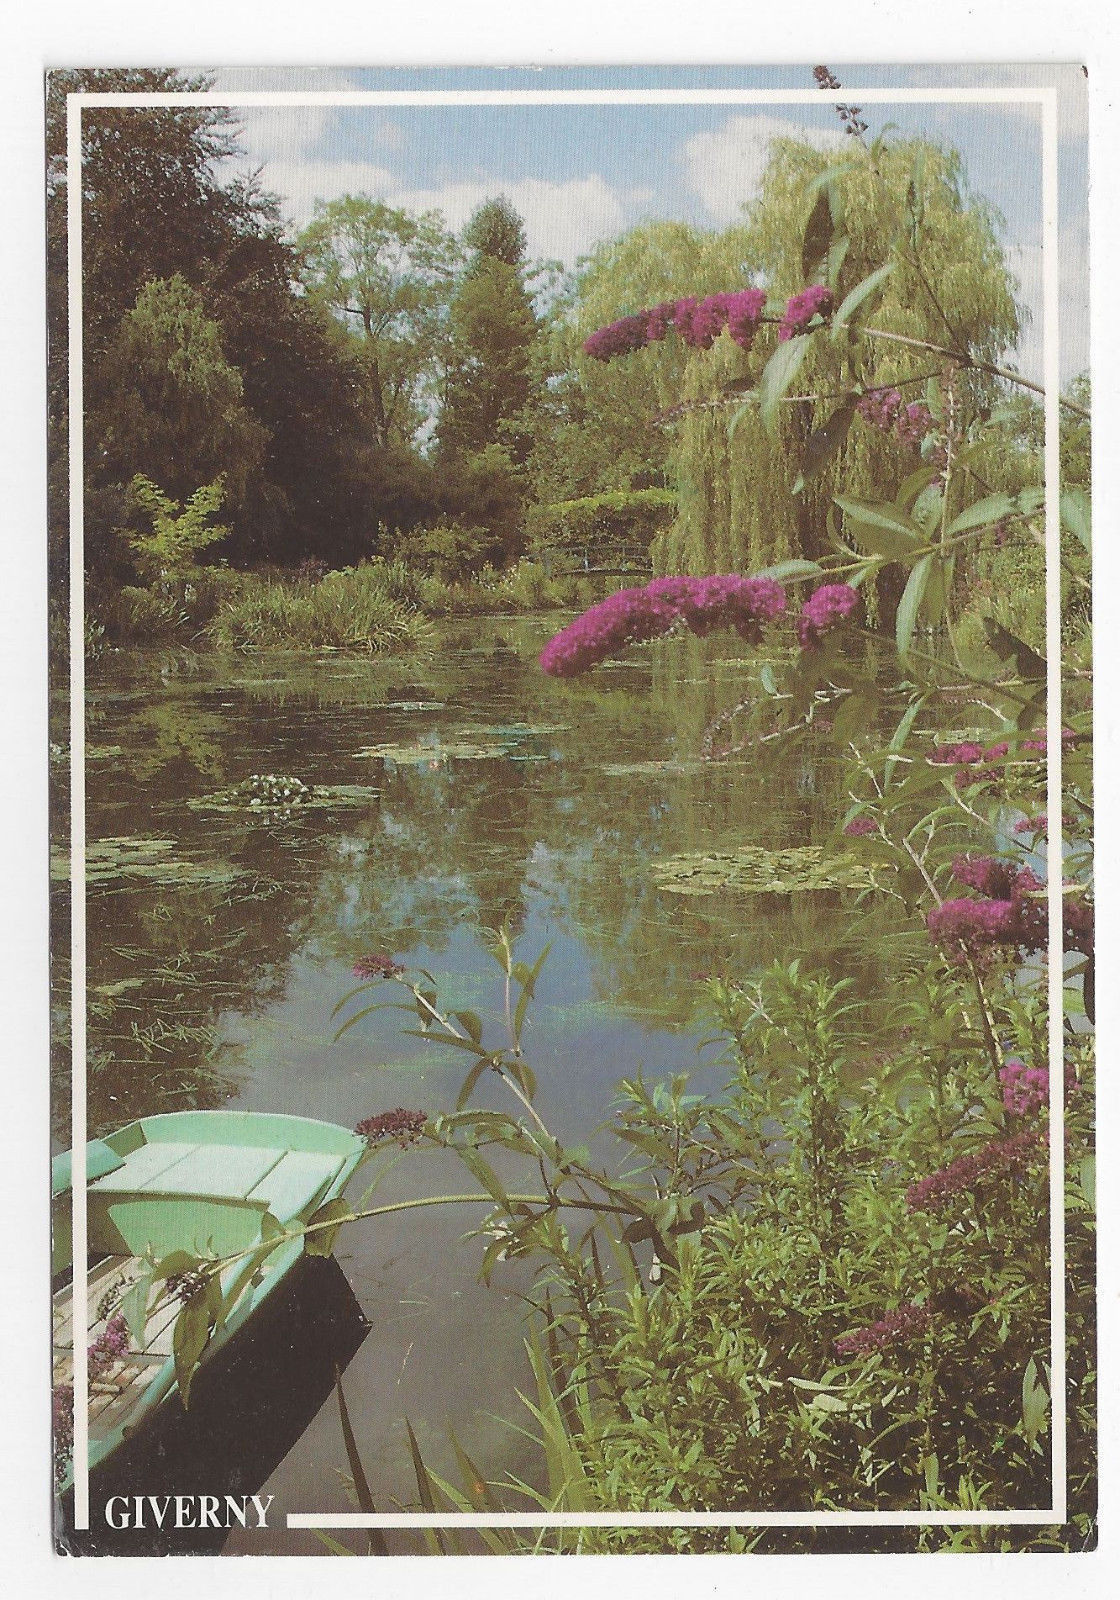 France Giverny Musee Claude Monet View Water Gardens 1993 Postcard 4X6